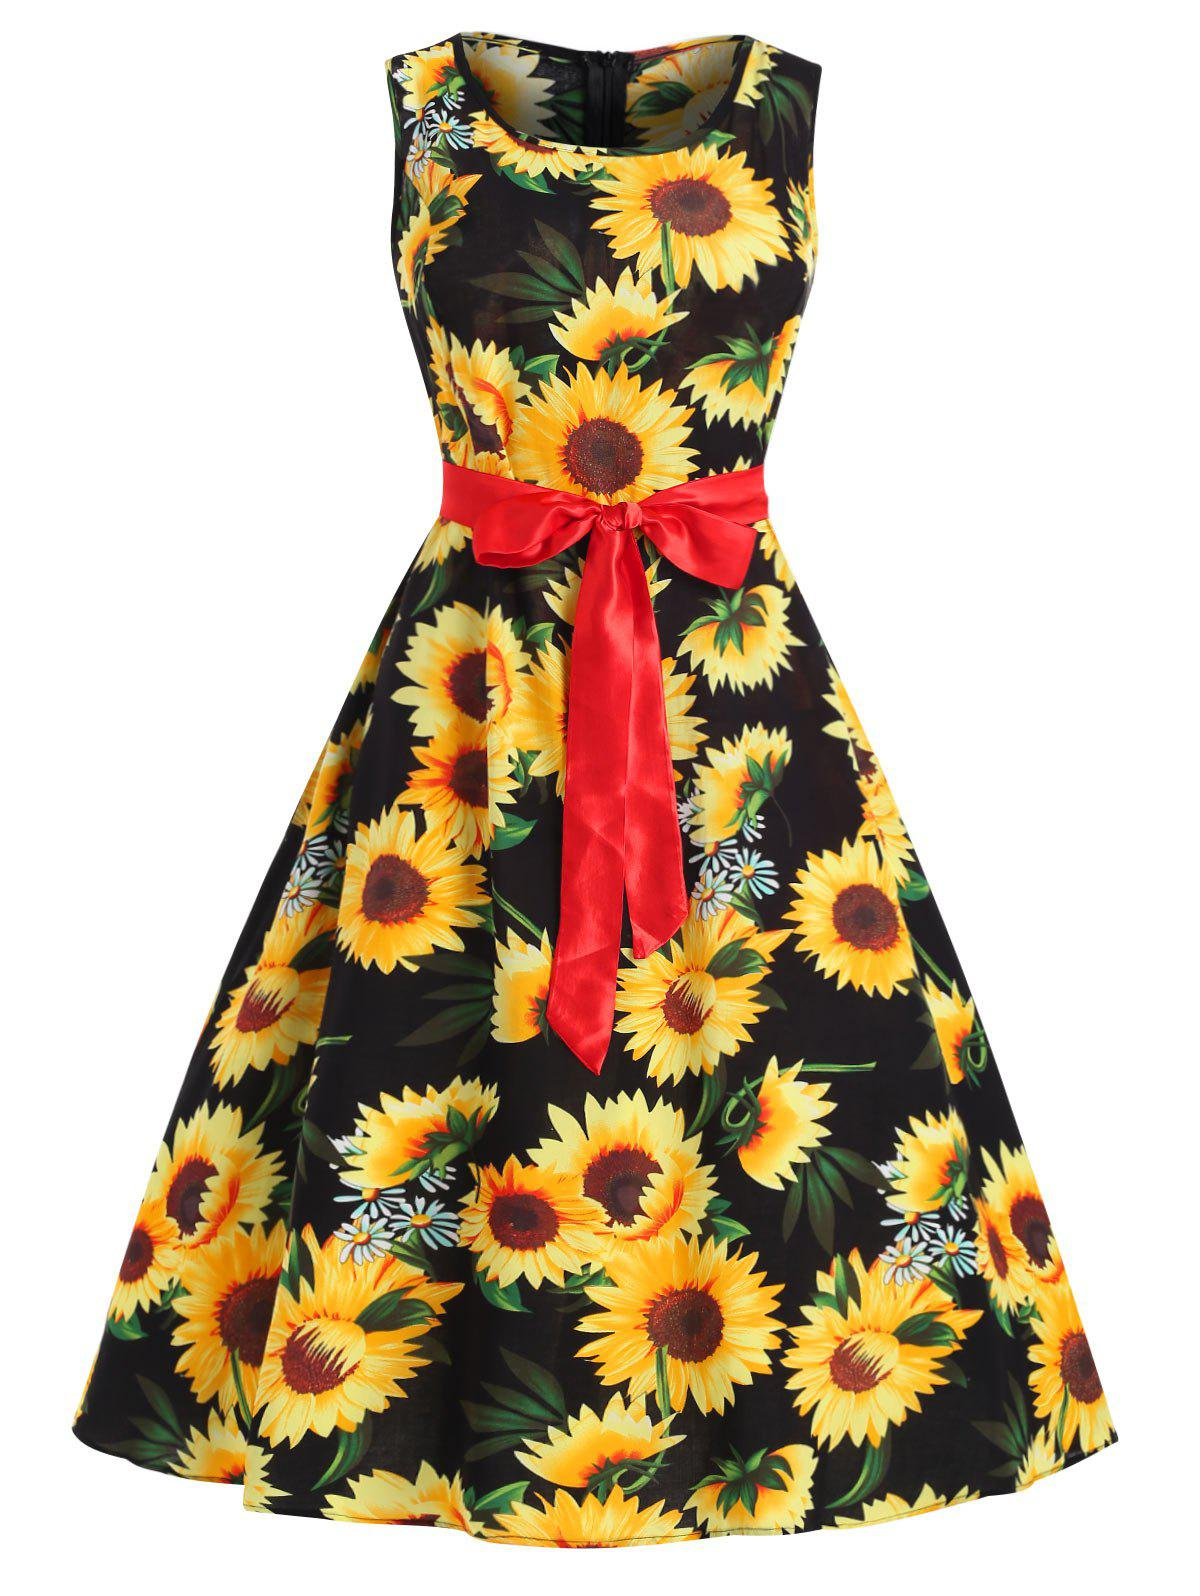 75ad41a29ec8 42% OFF] Sunflower Print Plus Size Flared Dress | Rosegal